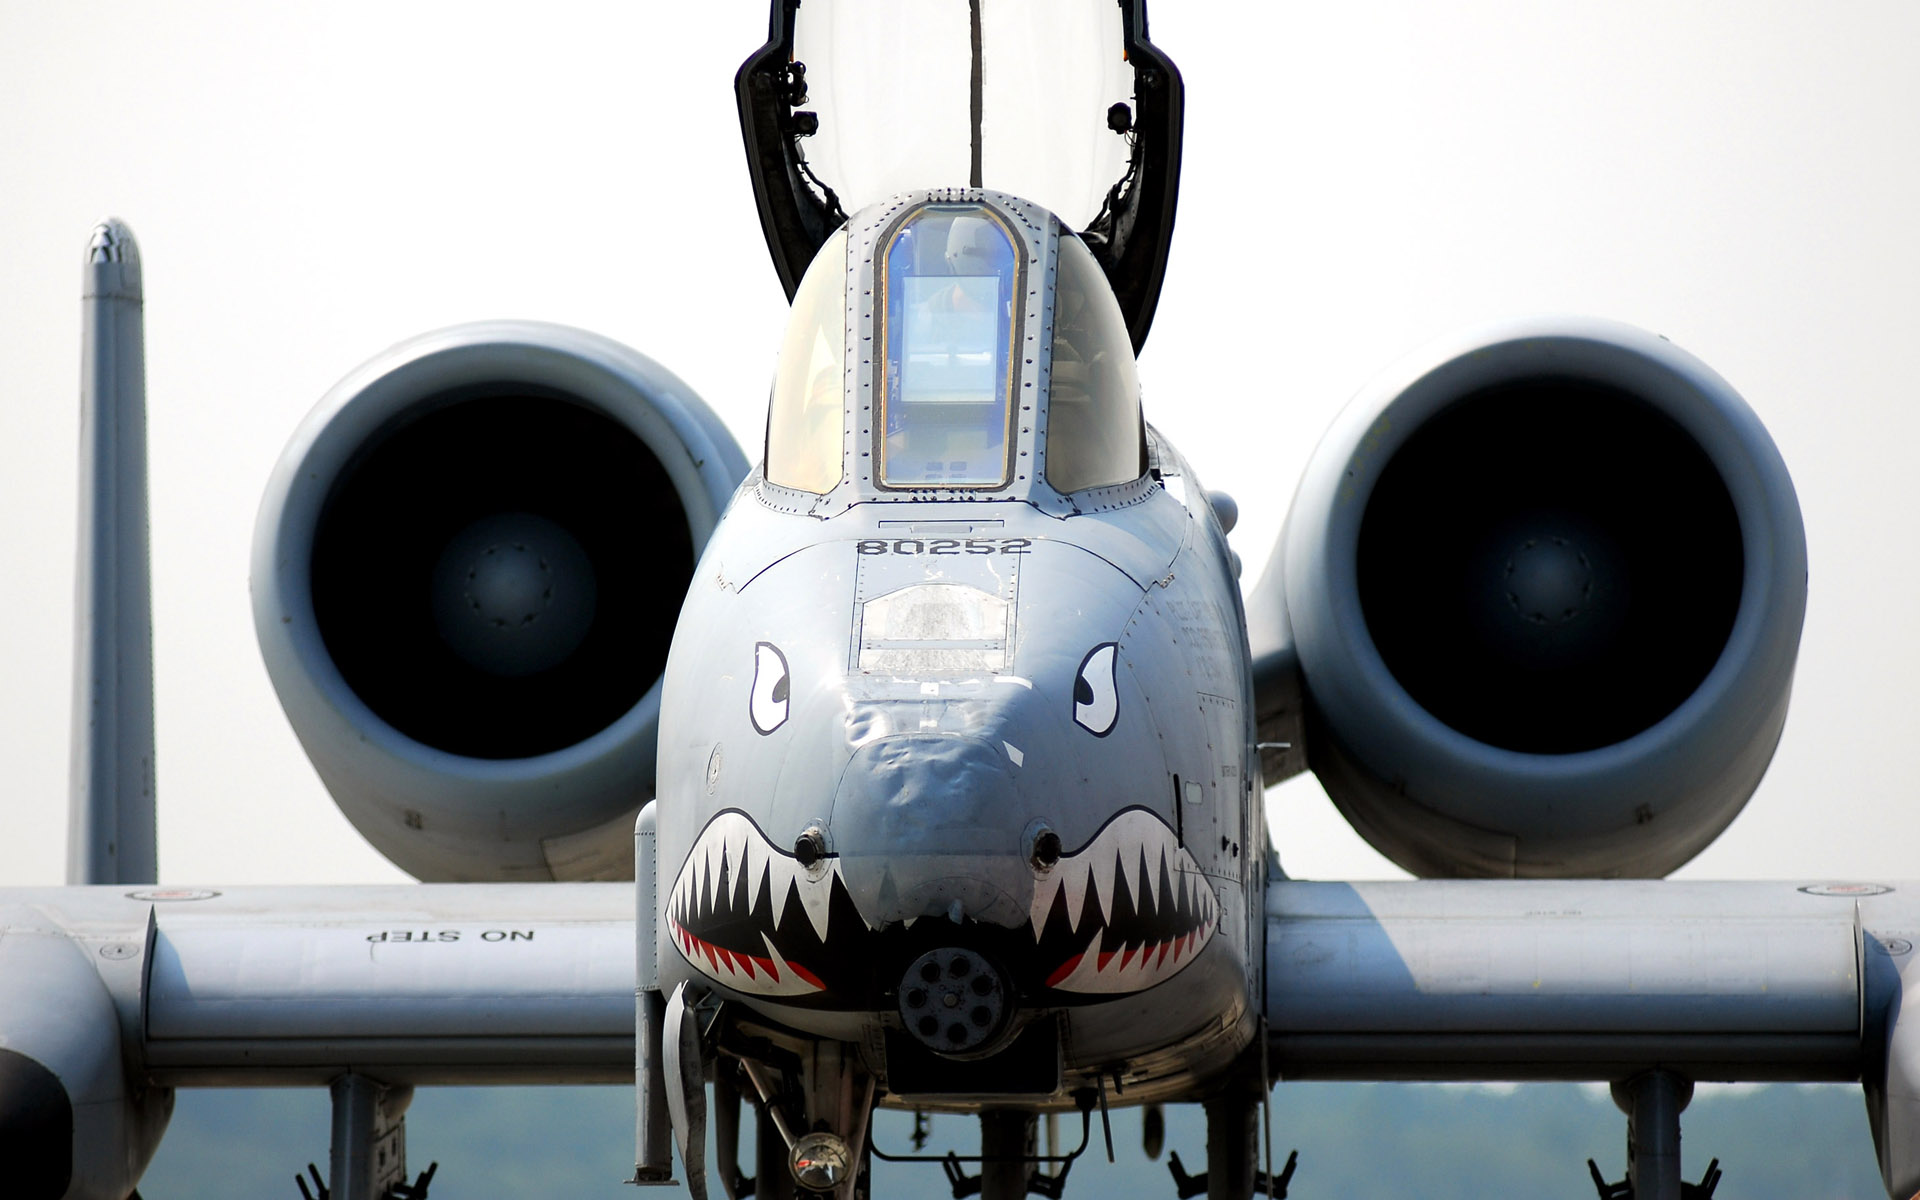 A10 Warthog Wallpaper Hd A10 1920x1200